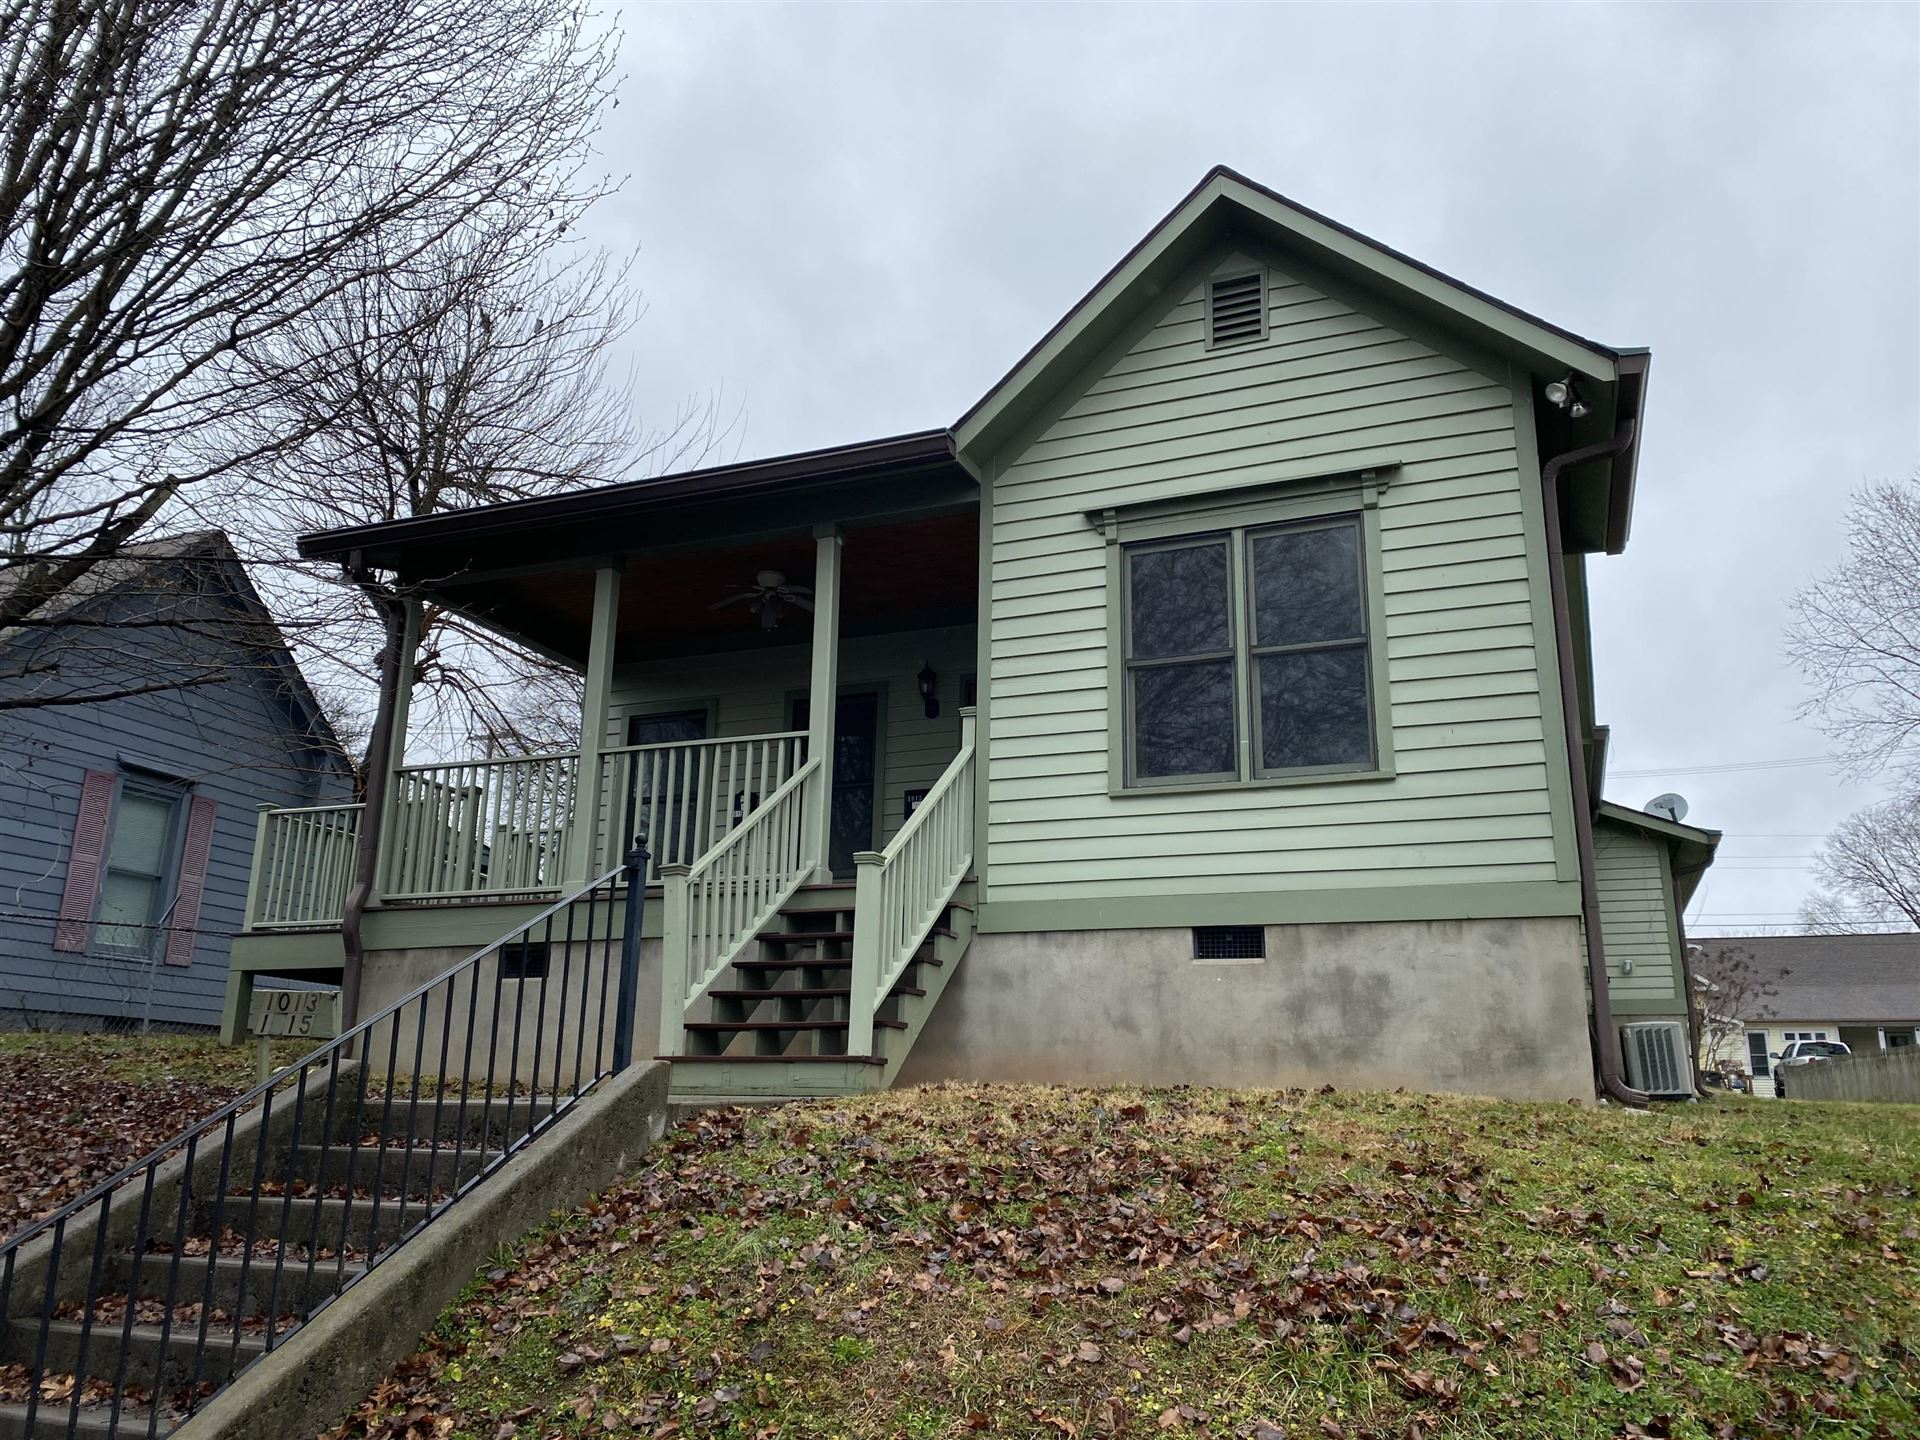 Photo of 1013 Tulip Ave, Knoxville, TN 37921 (MLS # 1139624)